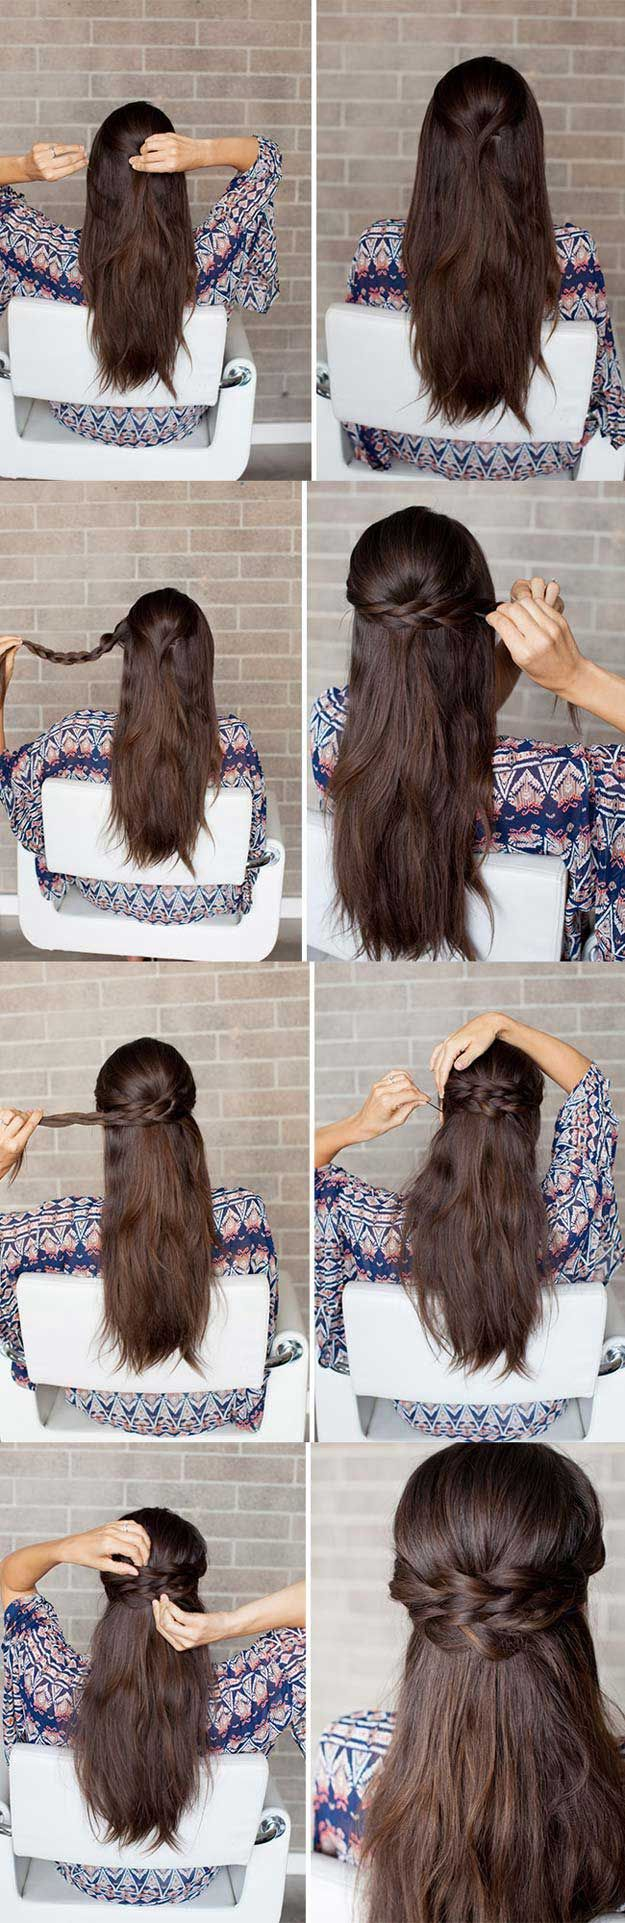 *** Amazing Half Up-Half Down Hairstyles For Long Hair - Braided Half-Up How-to